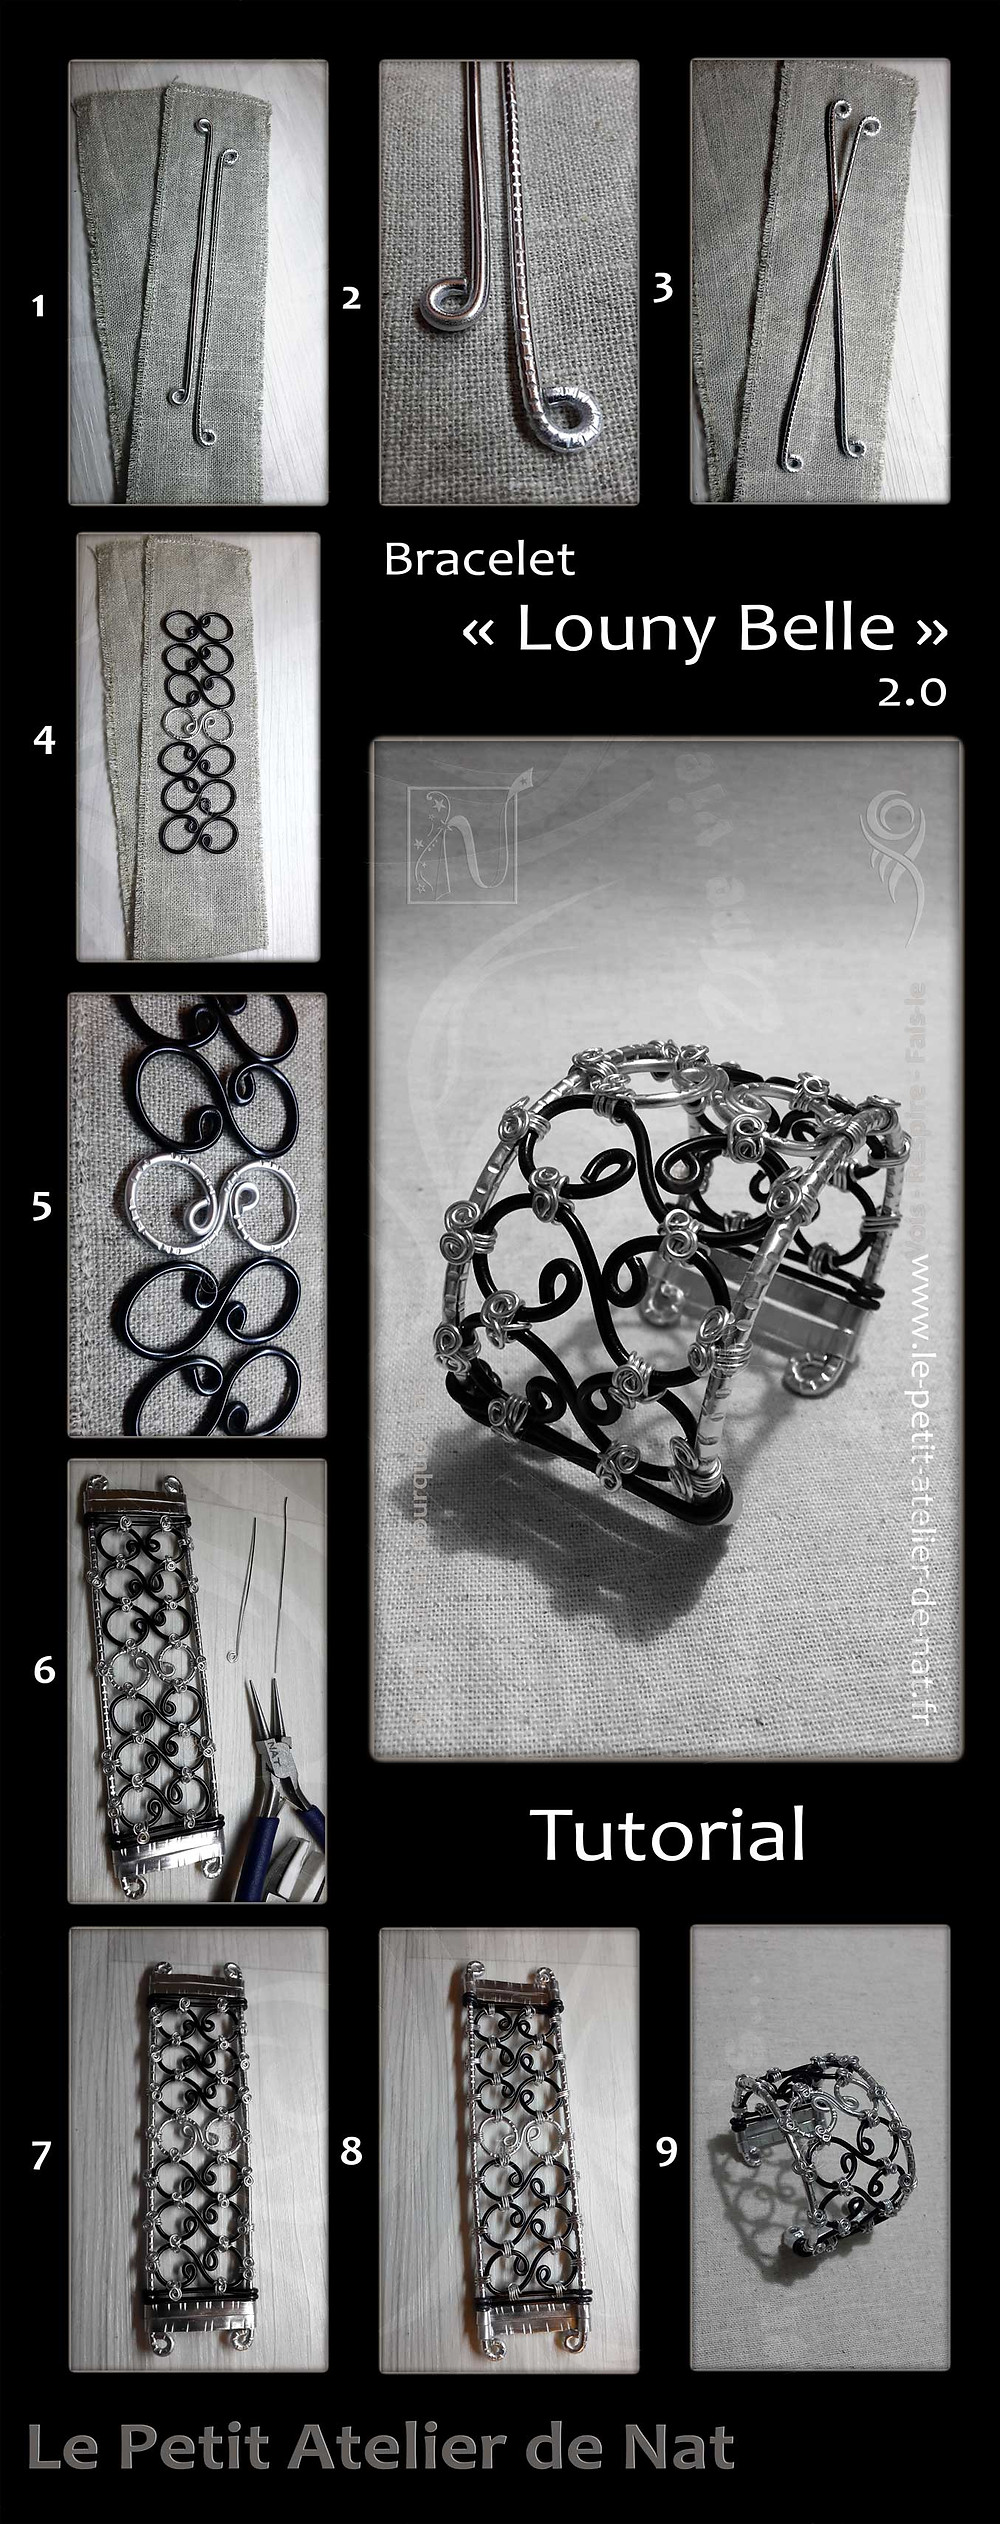 Here is a graphic composition of several photos showing the manufacturing steps of the bracelet